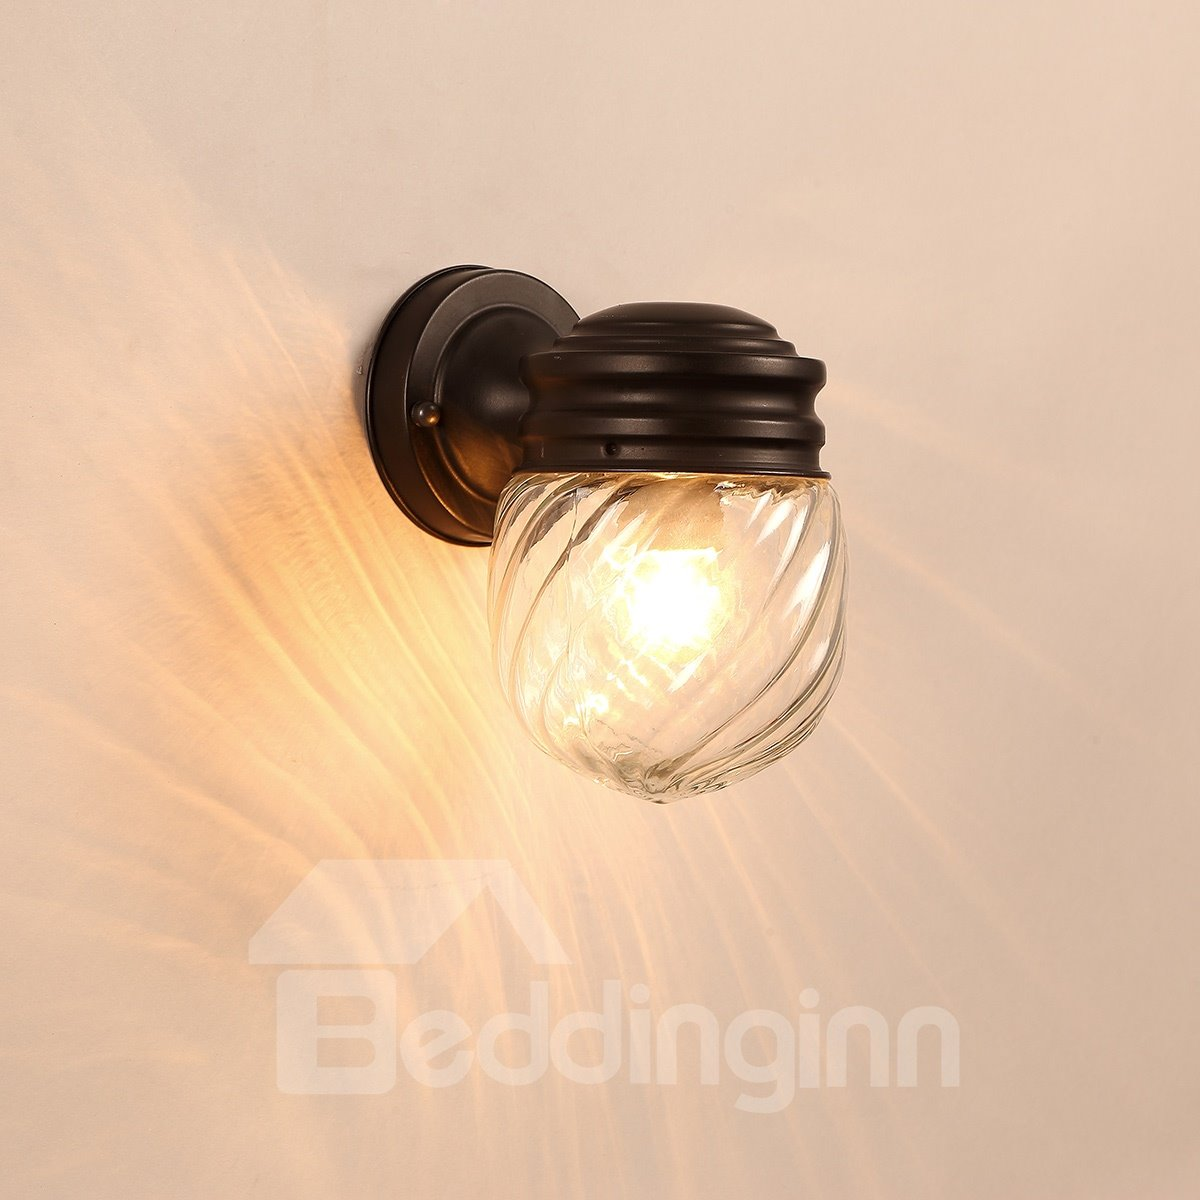 Black Base 1 Round Bulb with Spirals Plastic and Glass Wall Light